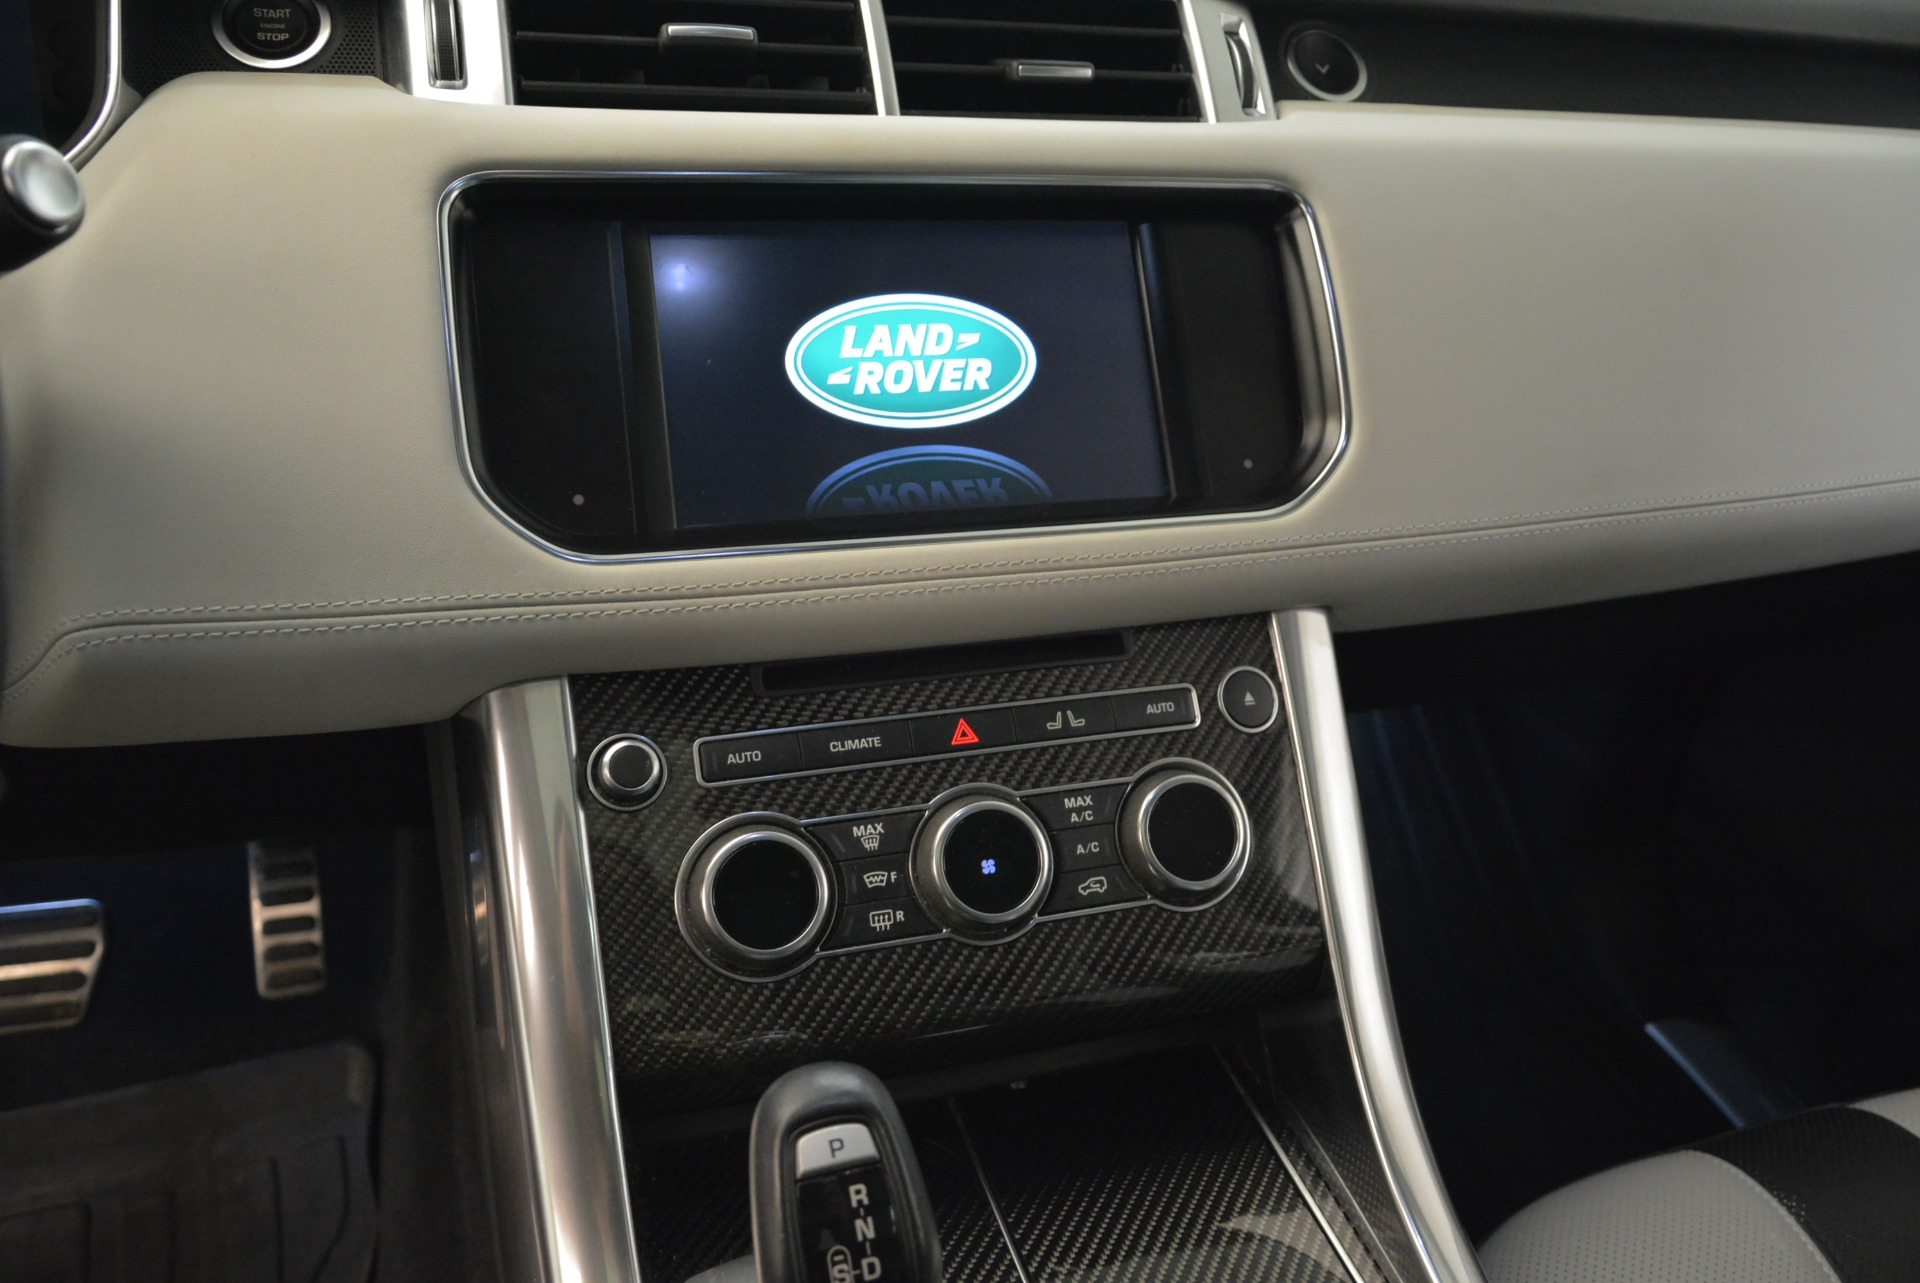 Used 2015 Land Rover Range Rover Sport SVR For Sale In Westport, CT 2046_p20